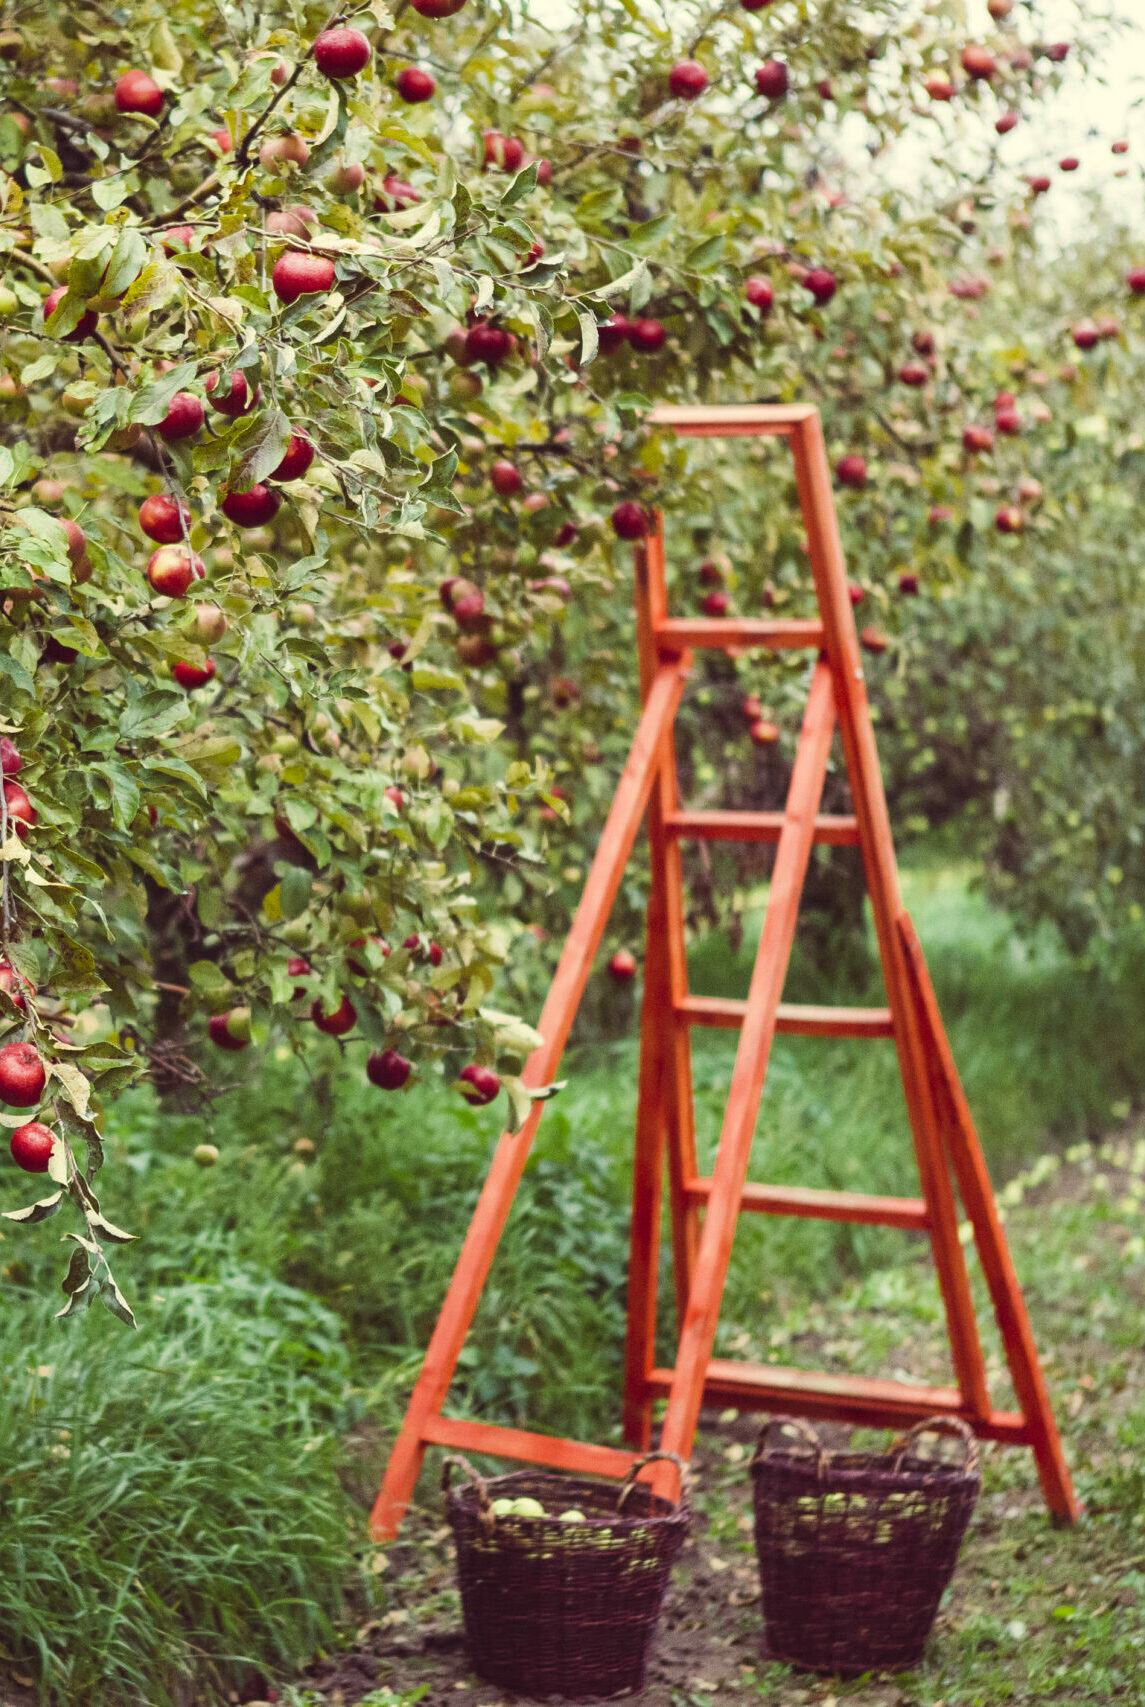 Bountiful harvest in apple orchard